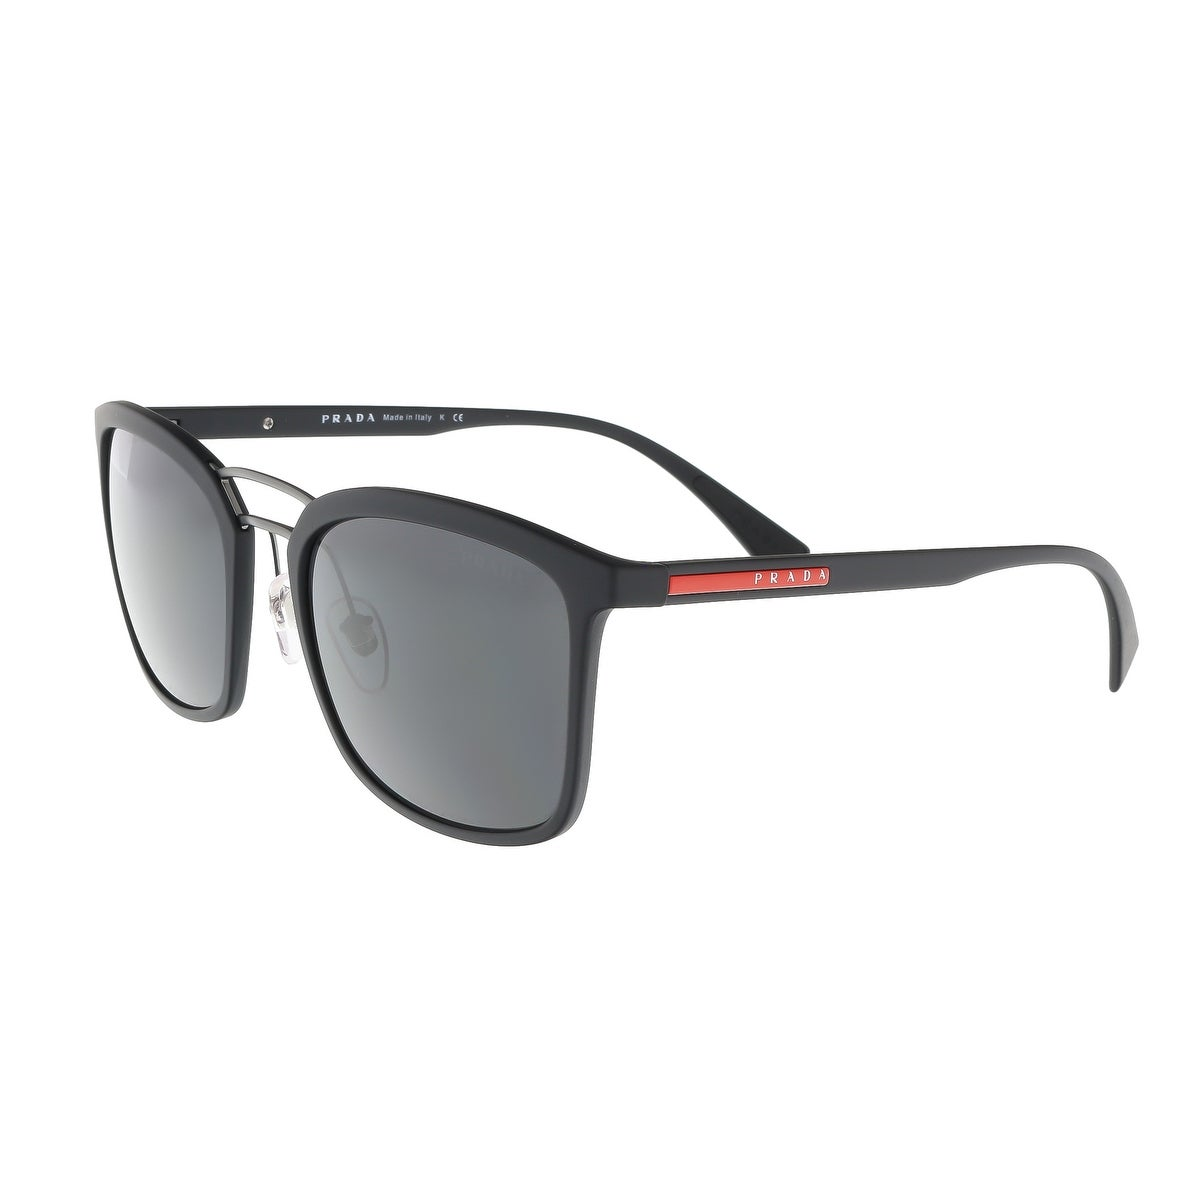 856dc2302023 Prada Sunglasses | Shop our Best Clothing & Shoes Deals Online at Overstock